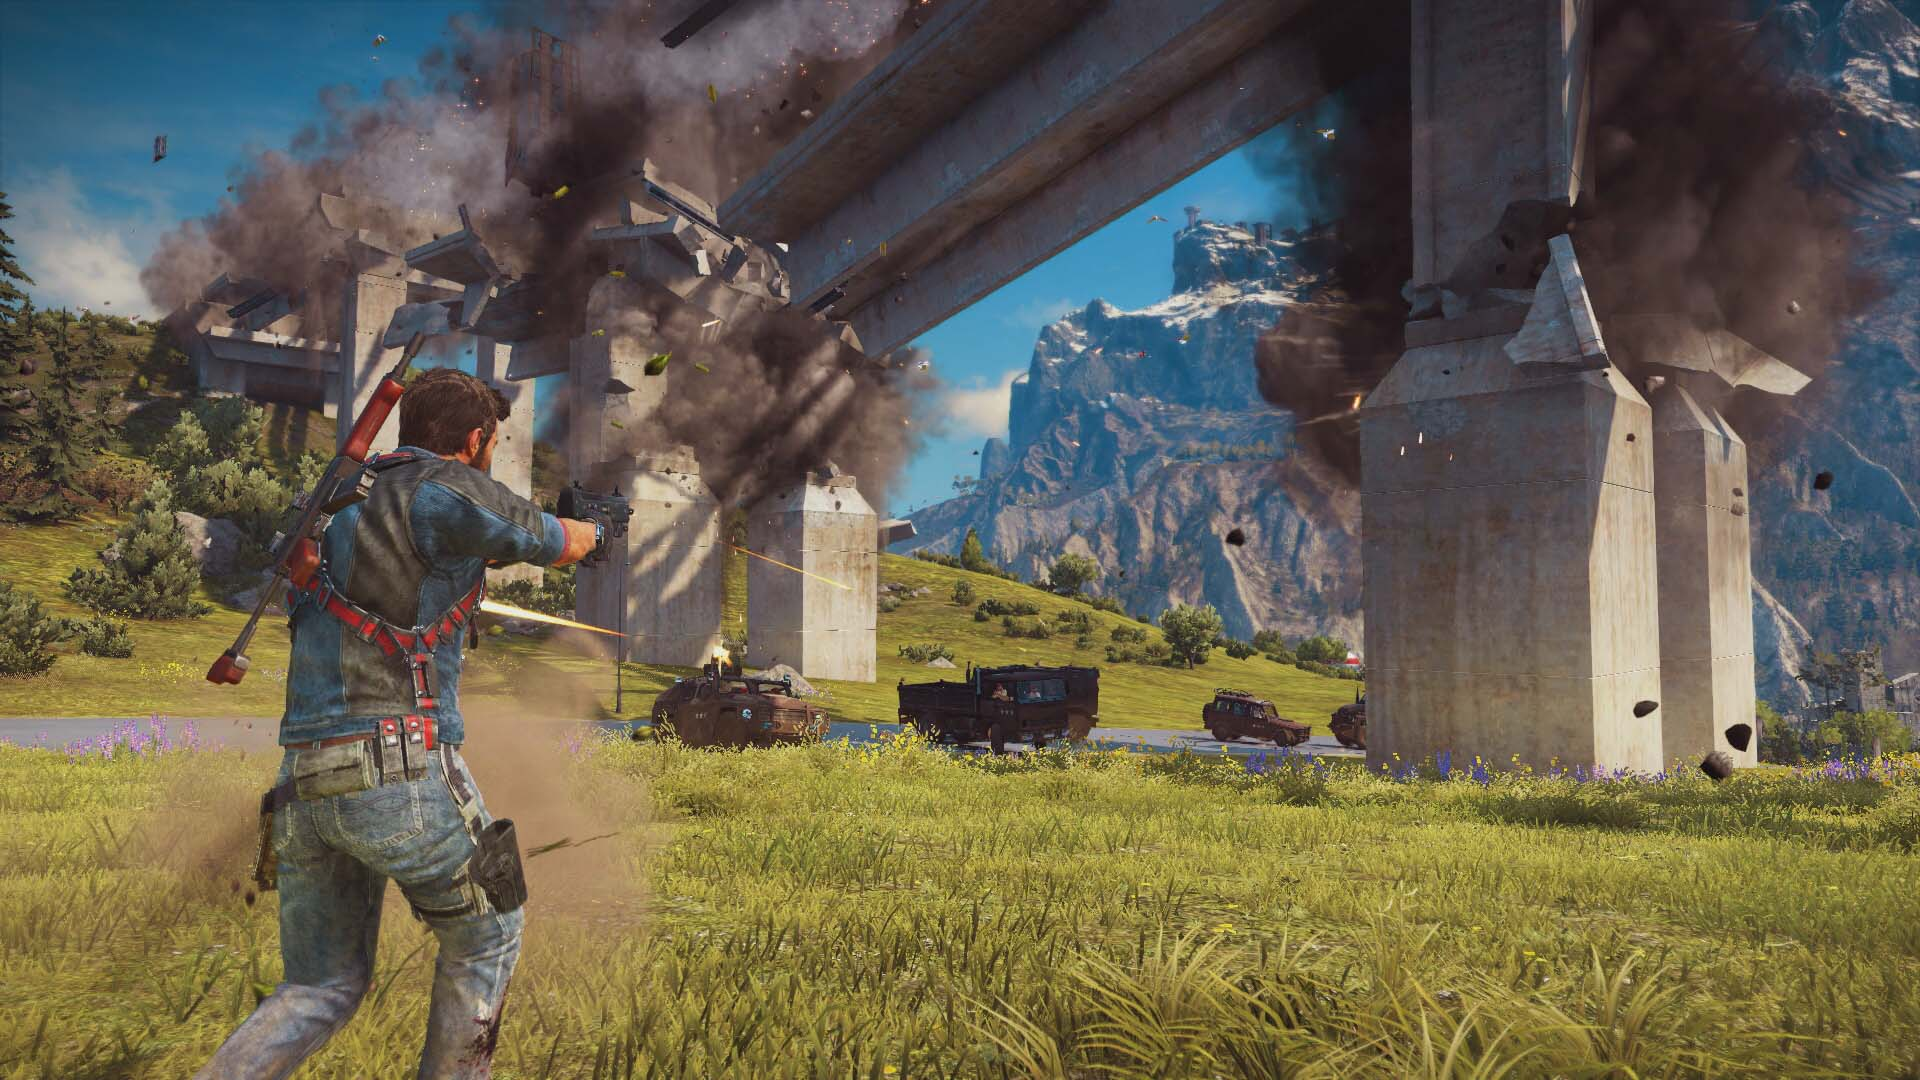 download just cause 3 xl edition v1.05 repack by corepack direct link uptobox ftp link openload gajekompi singlelink iso magnet thepiratebay topkickass torrent extra mirror multiup filehosting google drive extra torrents alternative download